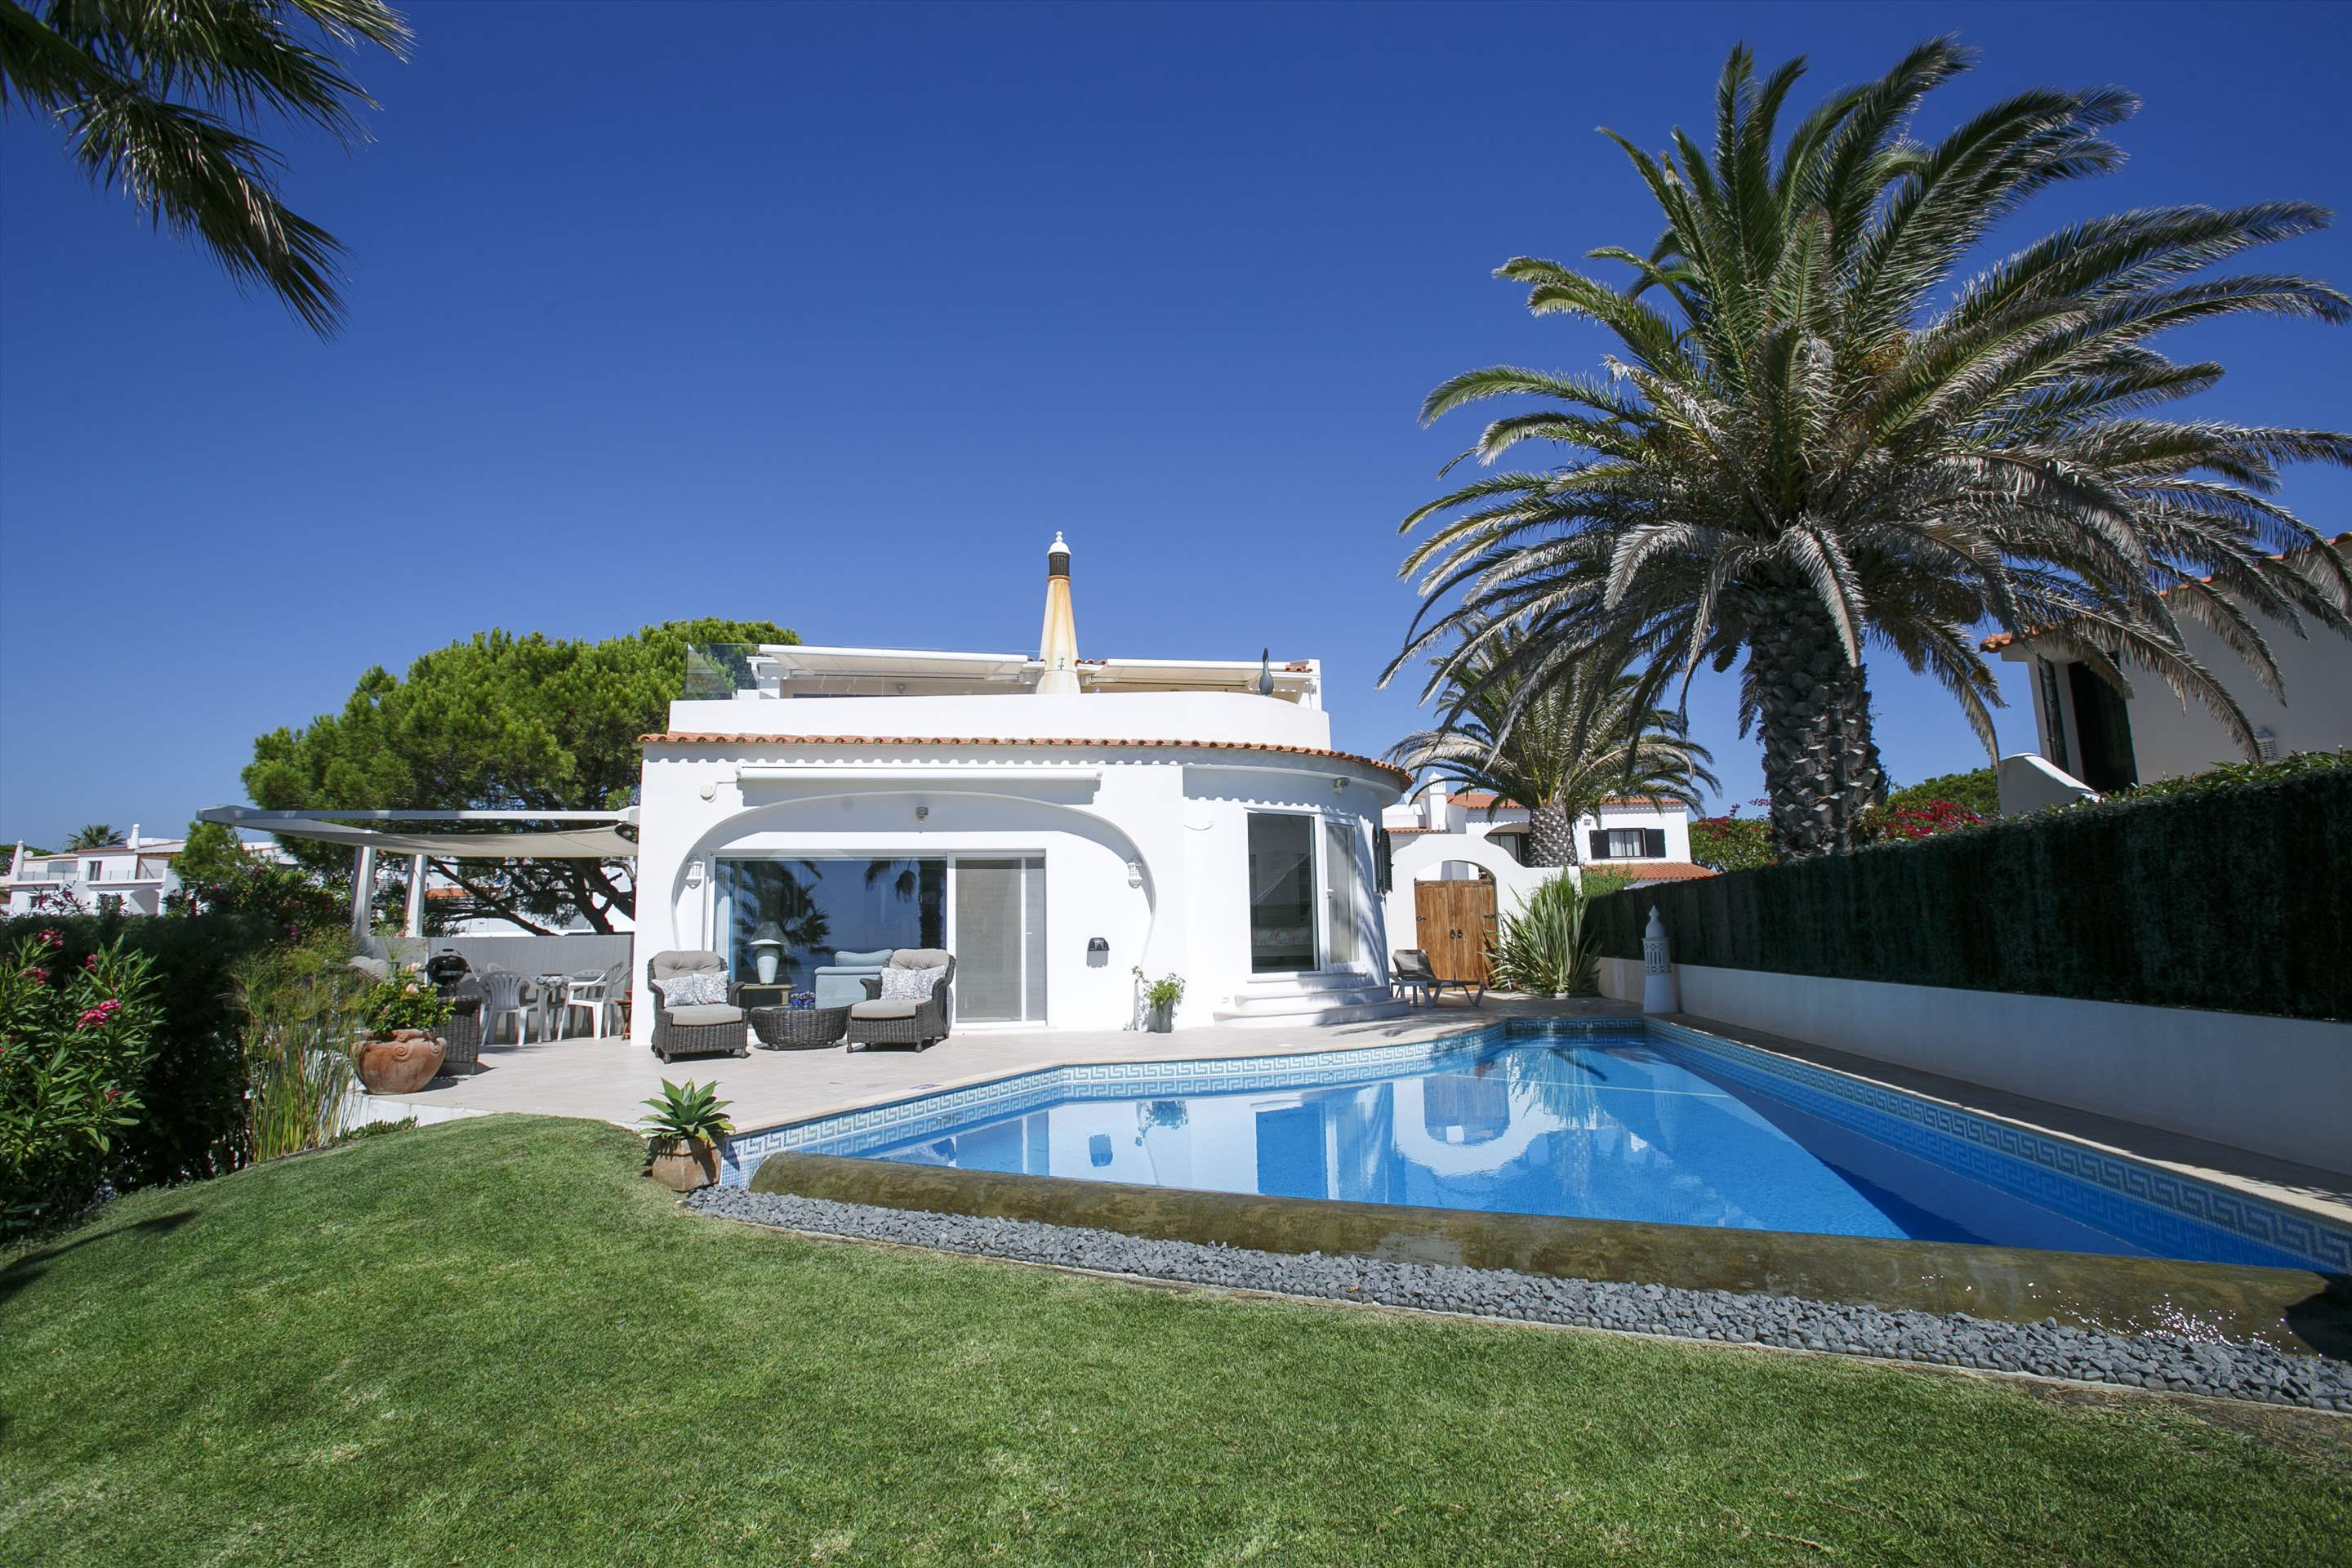 Villa Ocean Beach, 4 bedroom villa in Vale do Lobo, Algarve